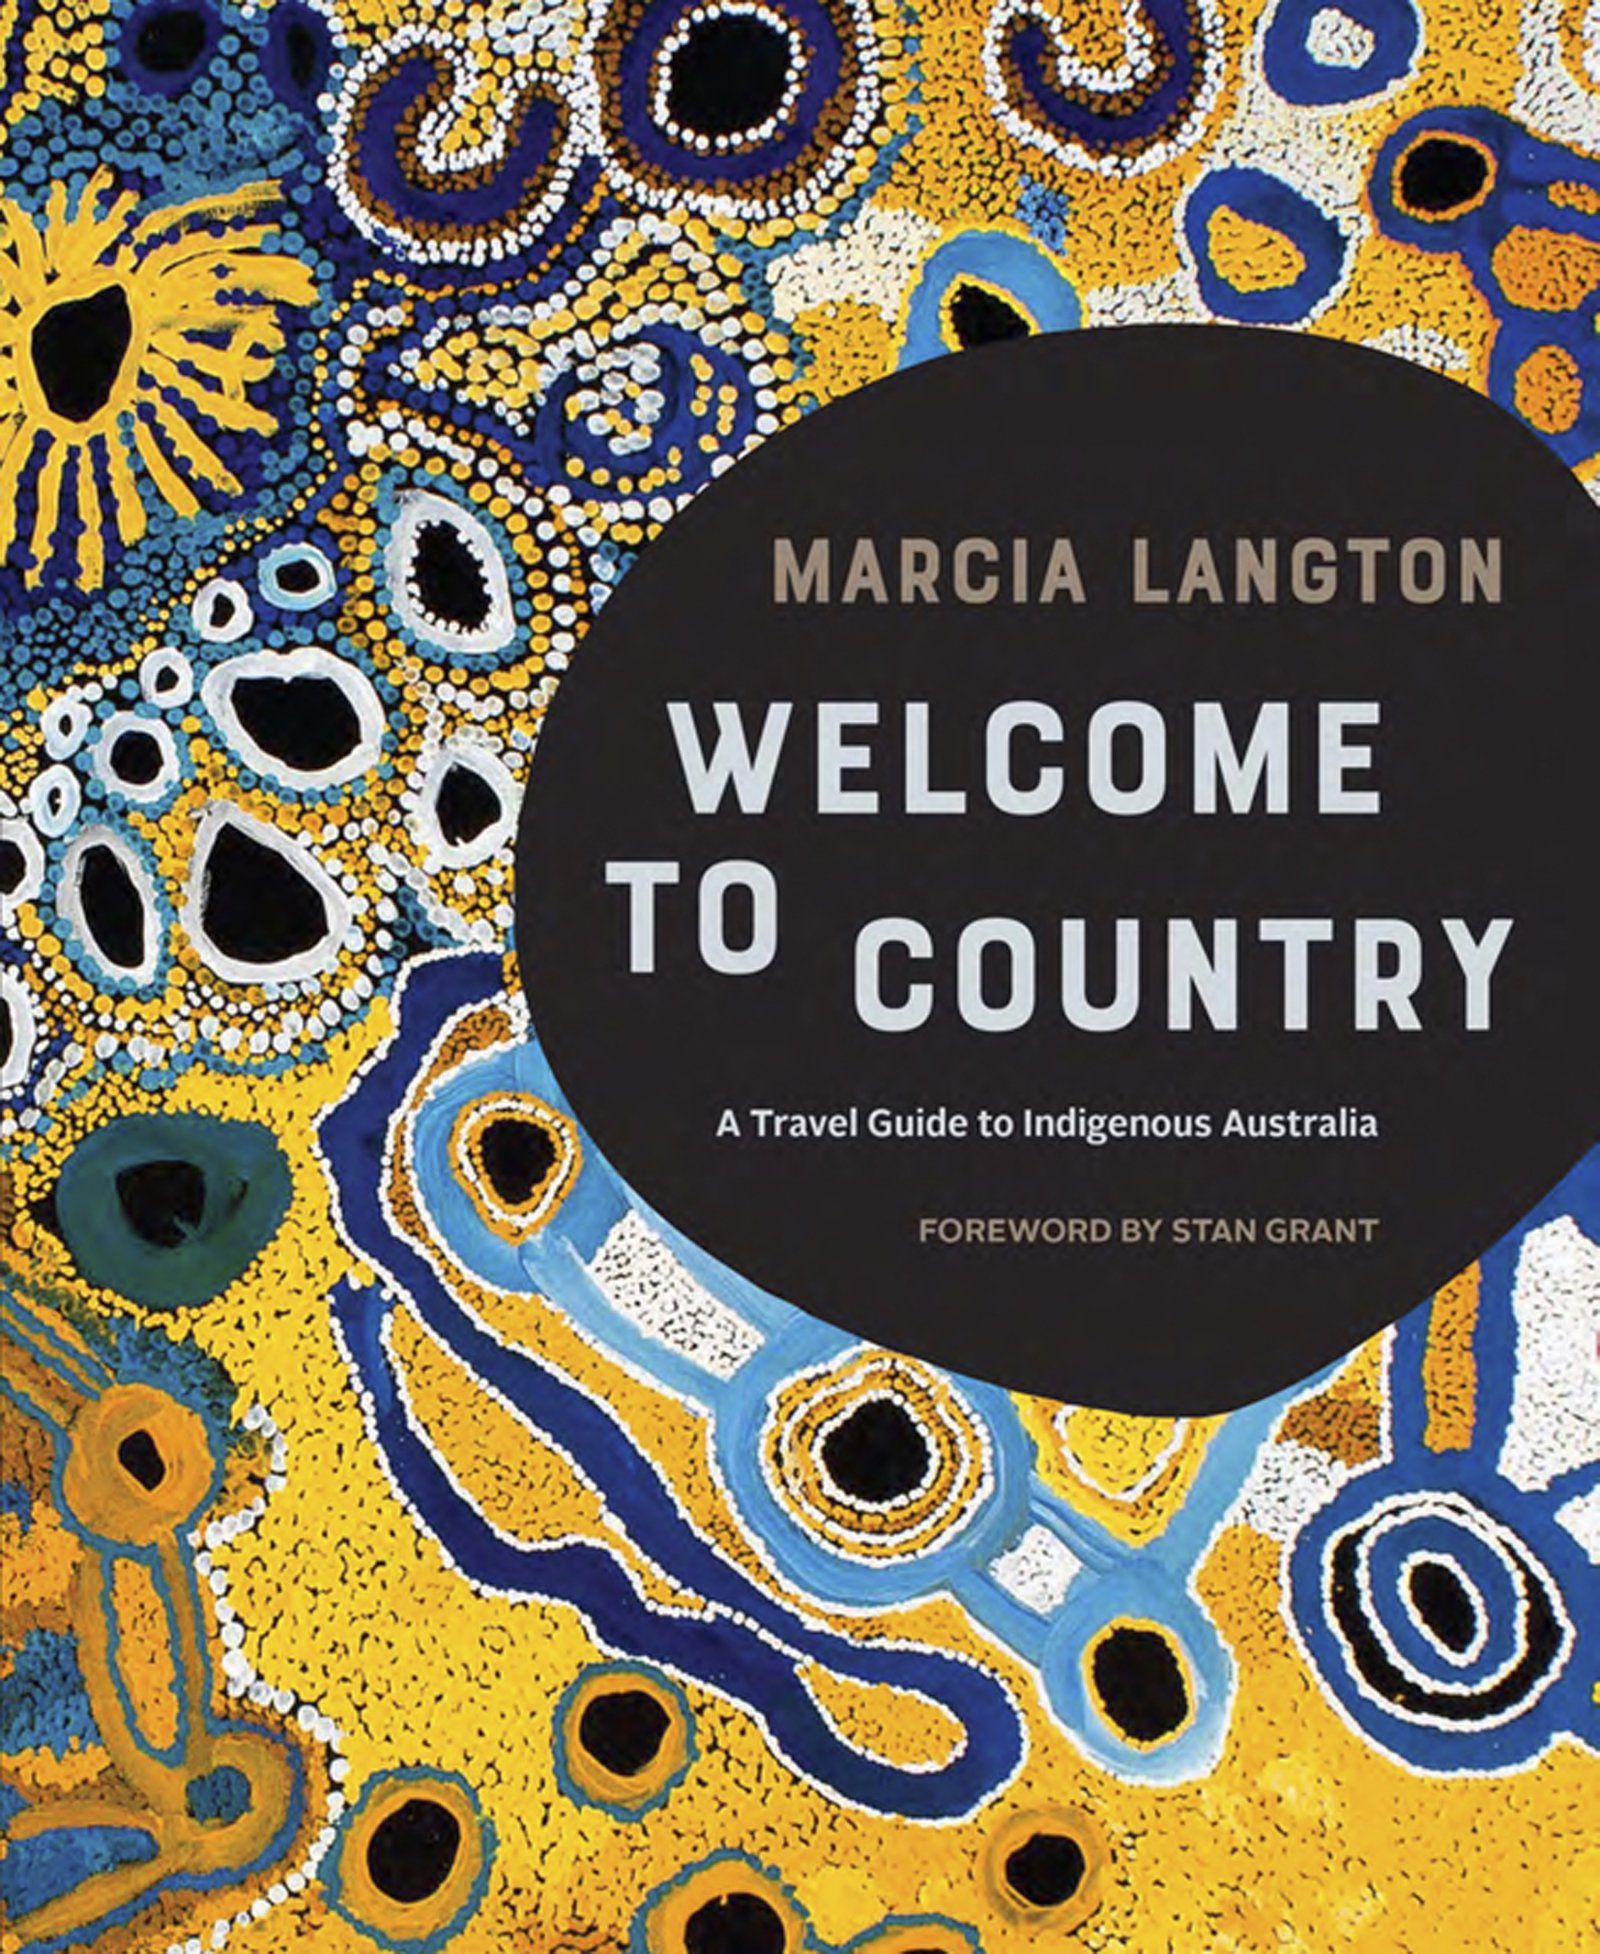 Image OfMarcia Langton: Welcome To Country